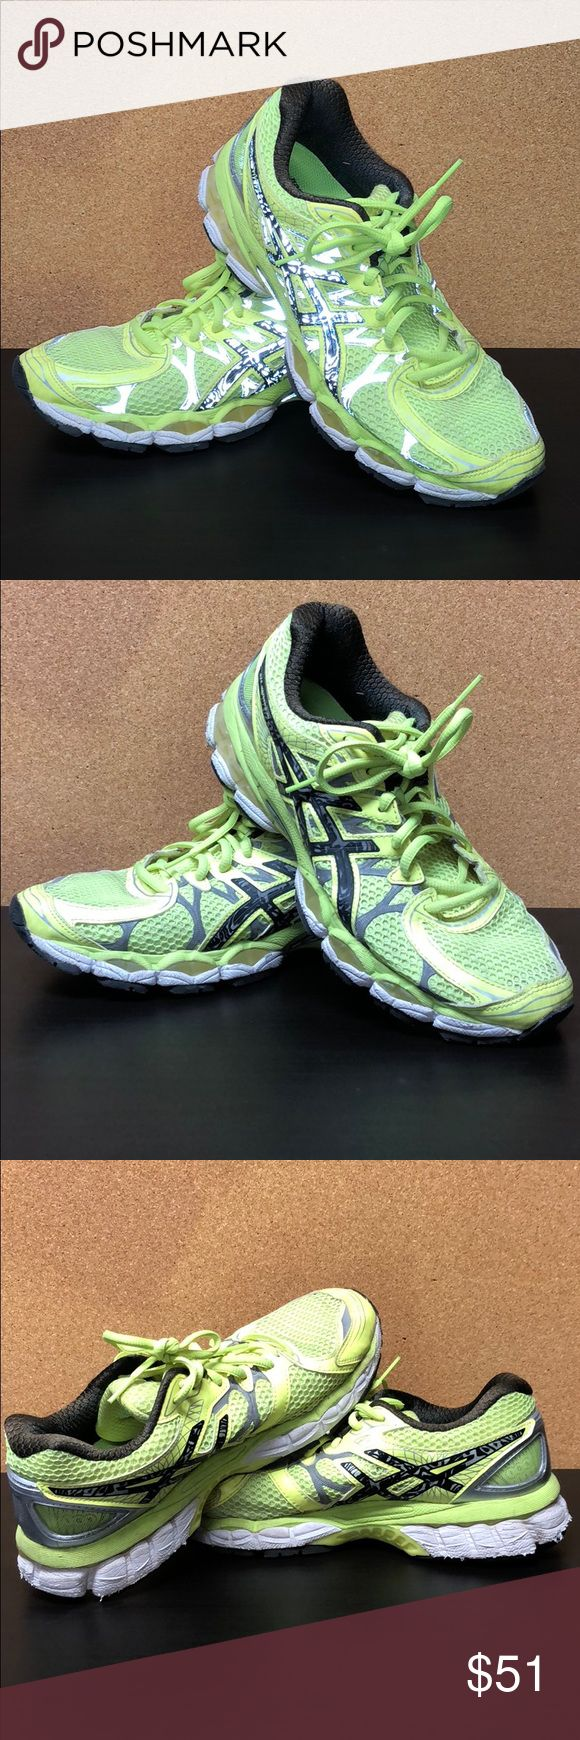 ASICS gel nimbus 16 neon running shoes ASICS gel nimbus 16 neon running shoes, phenomenally comfortable to run in, reflective at night, very good condition! Will wash before shipment! Asics Shoes Sneakers